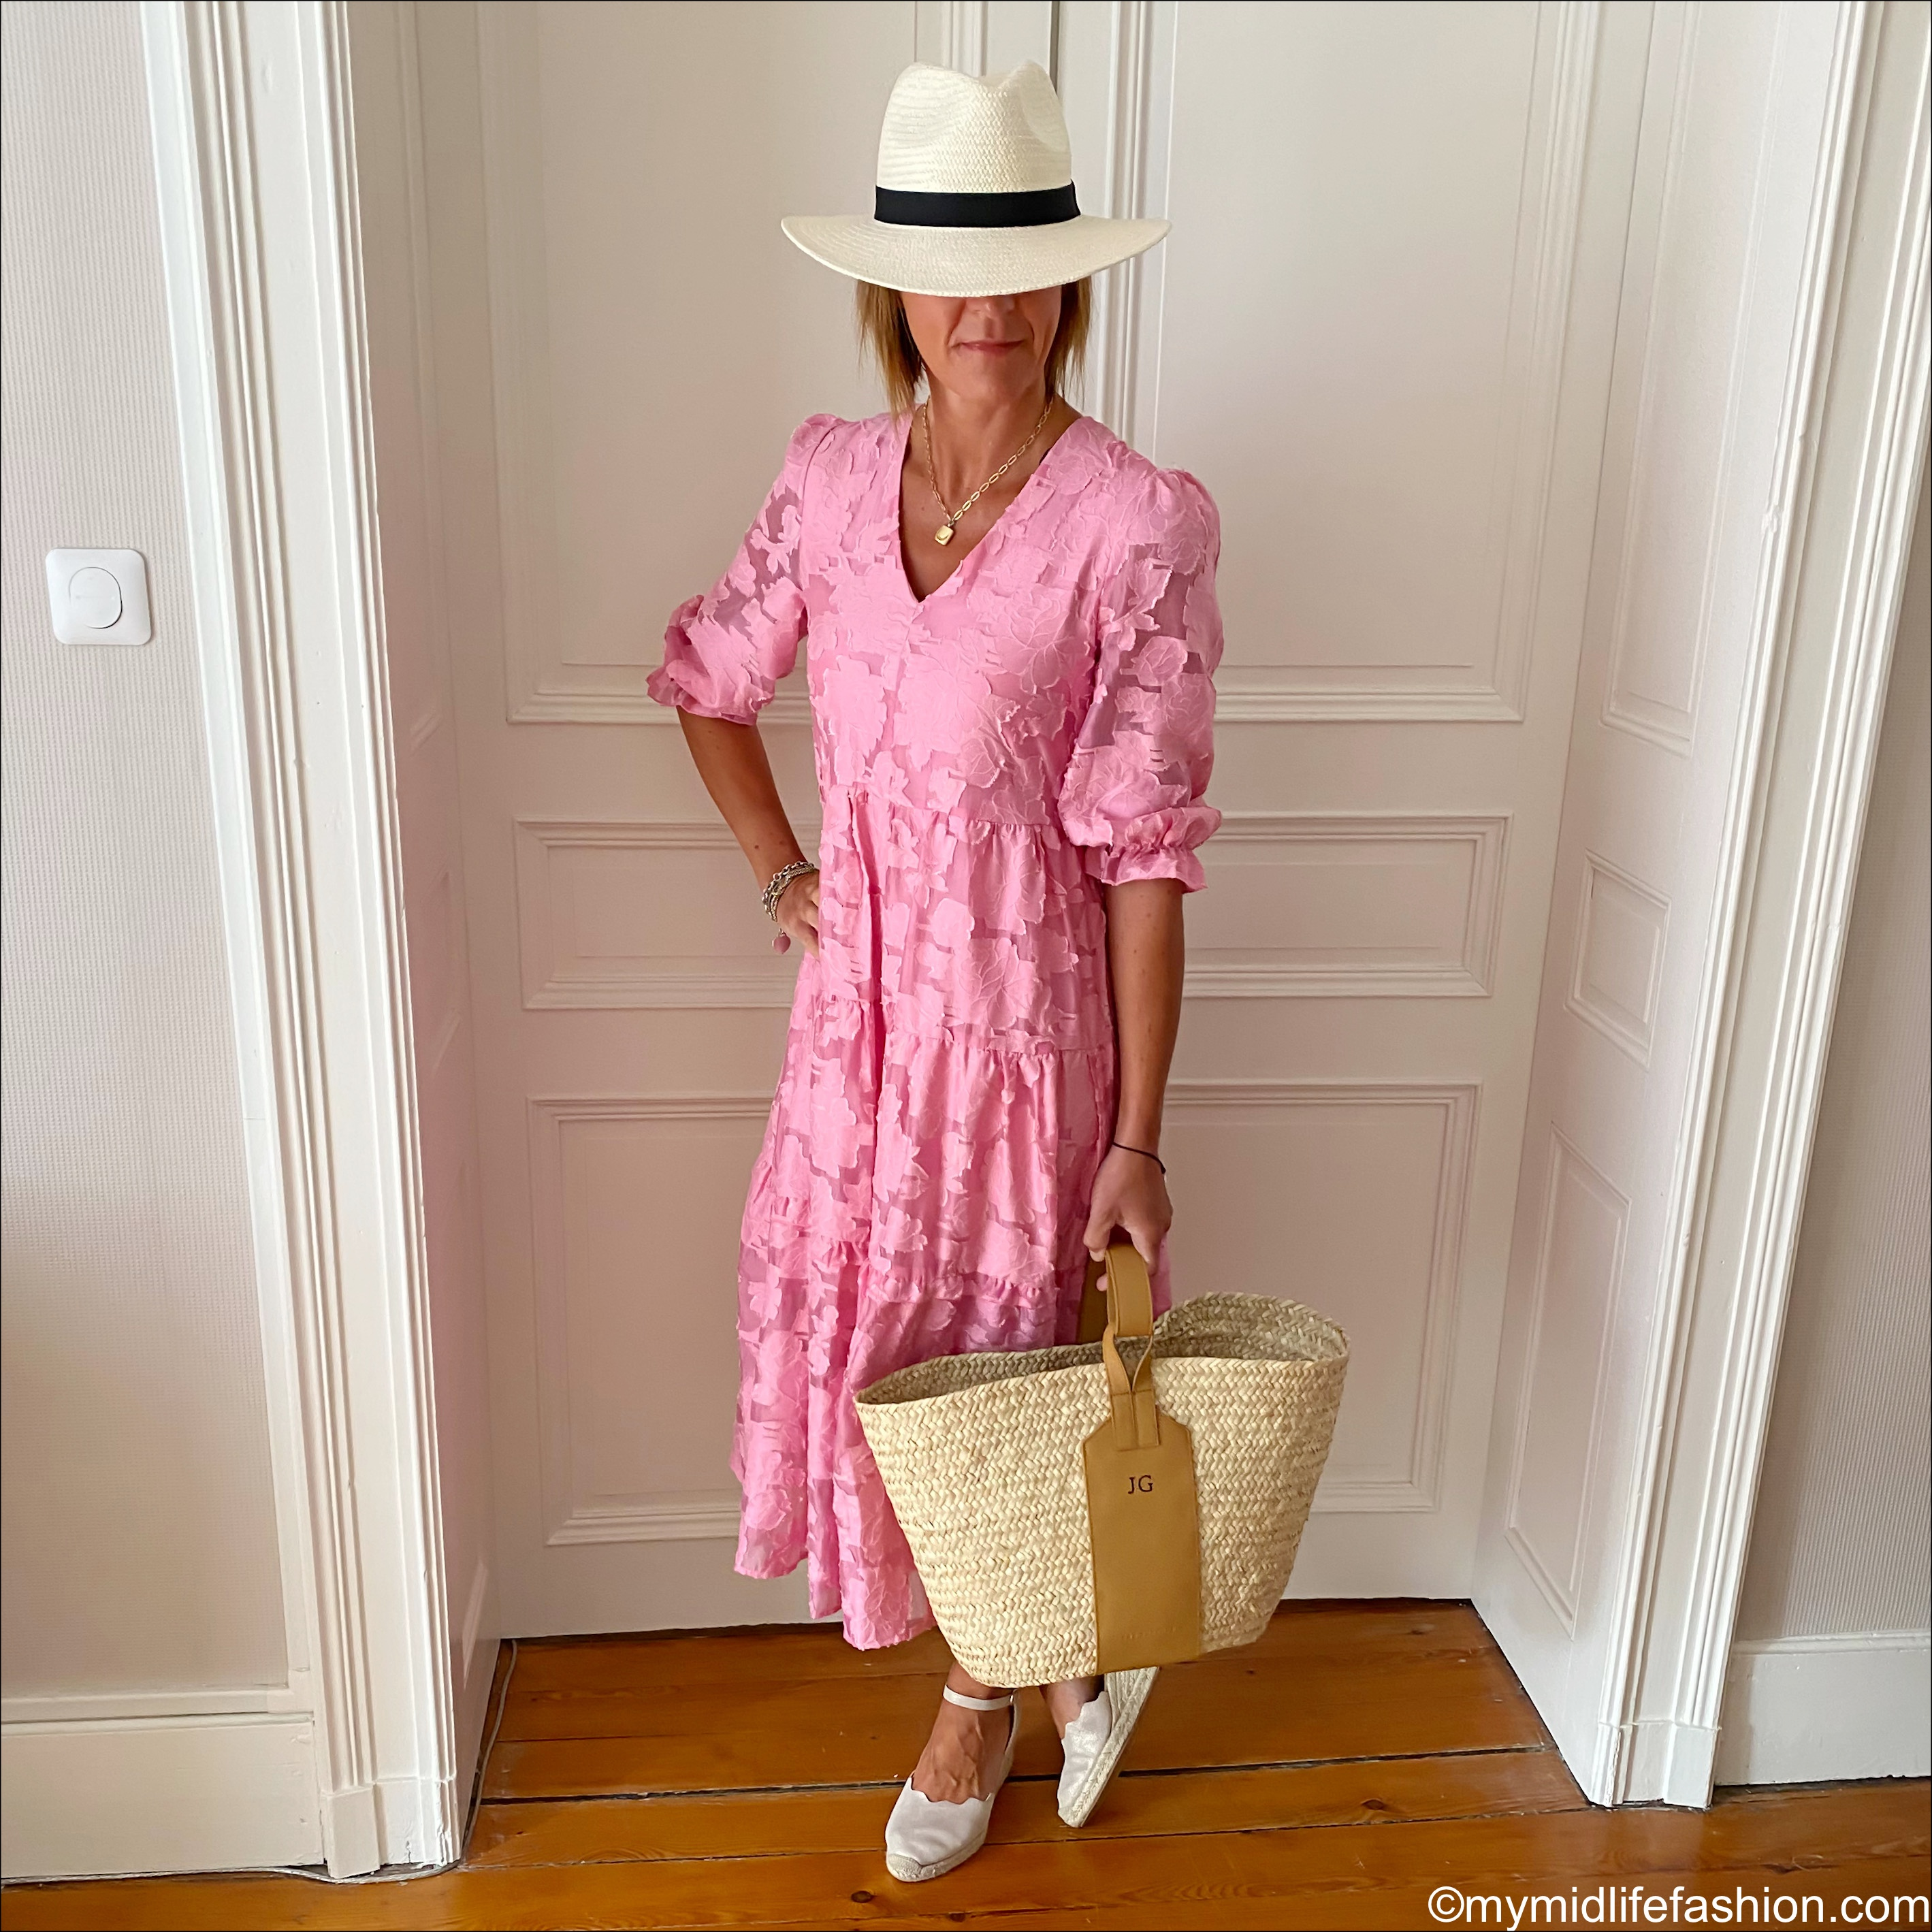 Plumo studio selected femme Eda dress, rae feather grace monogrammed basket, hush Panama hat, Carl Scarpa espadrille wedge sandals